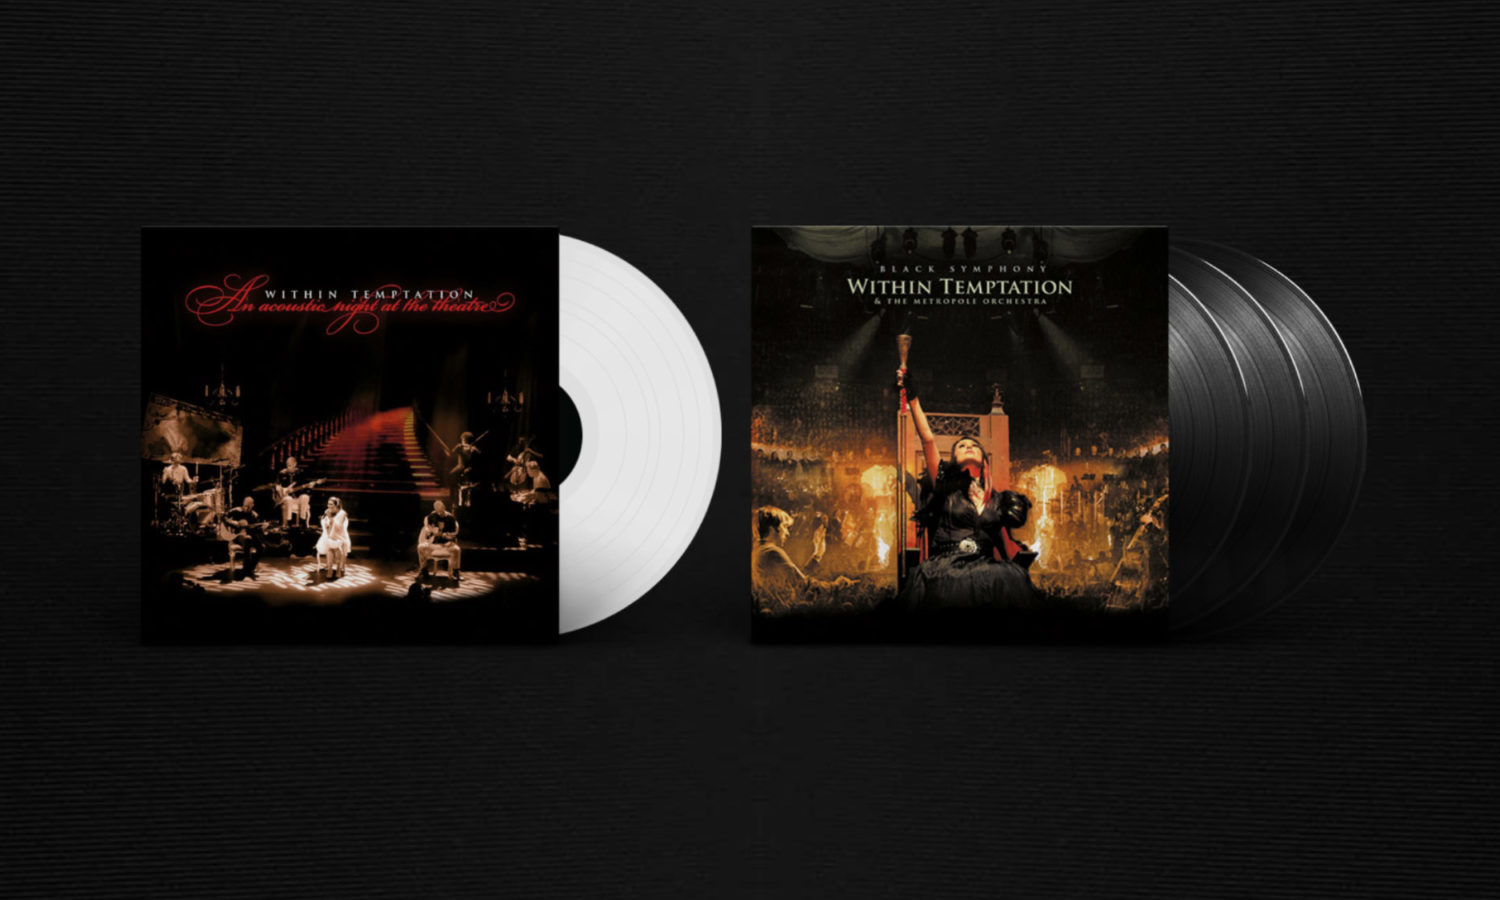 Within Temptation Reissue Sony Music Vinyl LP Acoustic Night Theatre Black Symphony 2018-1